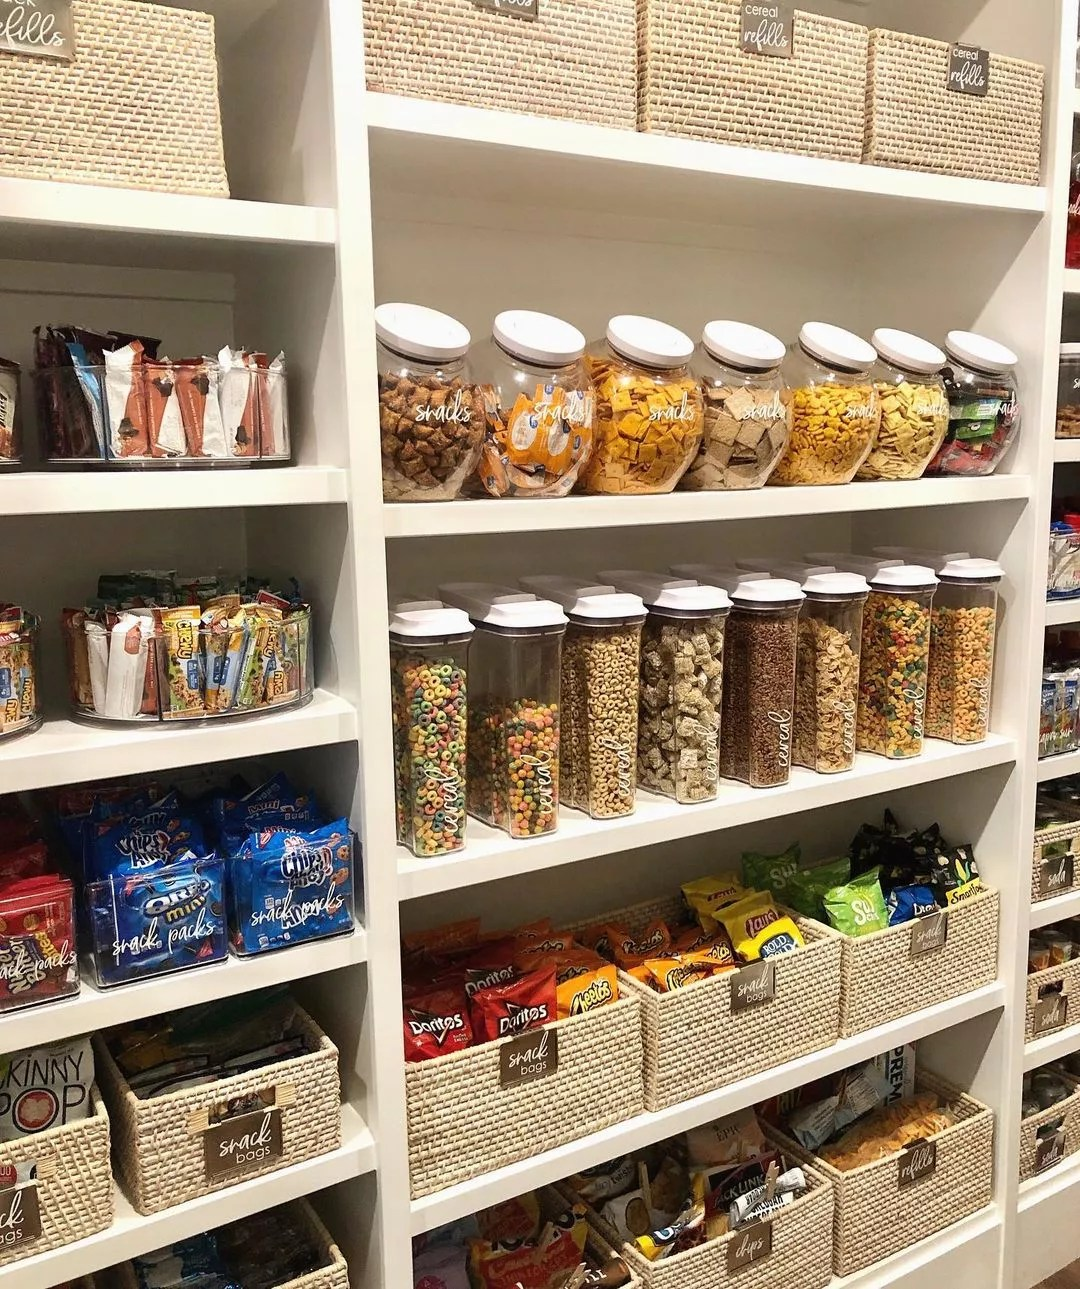 Pantry organized with storage containers and glass canisters. Photo by Instagram user @azhouseoforder